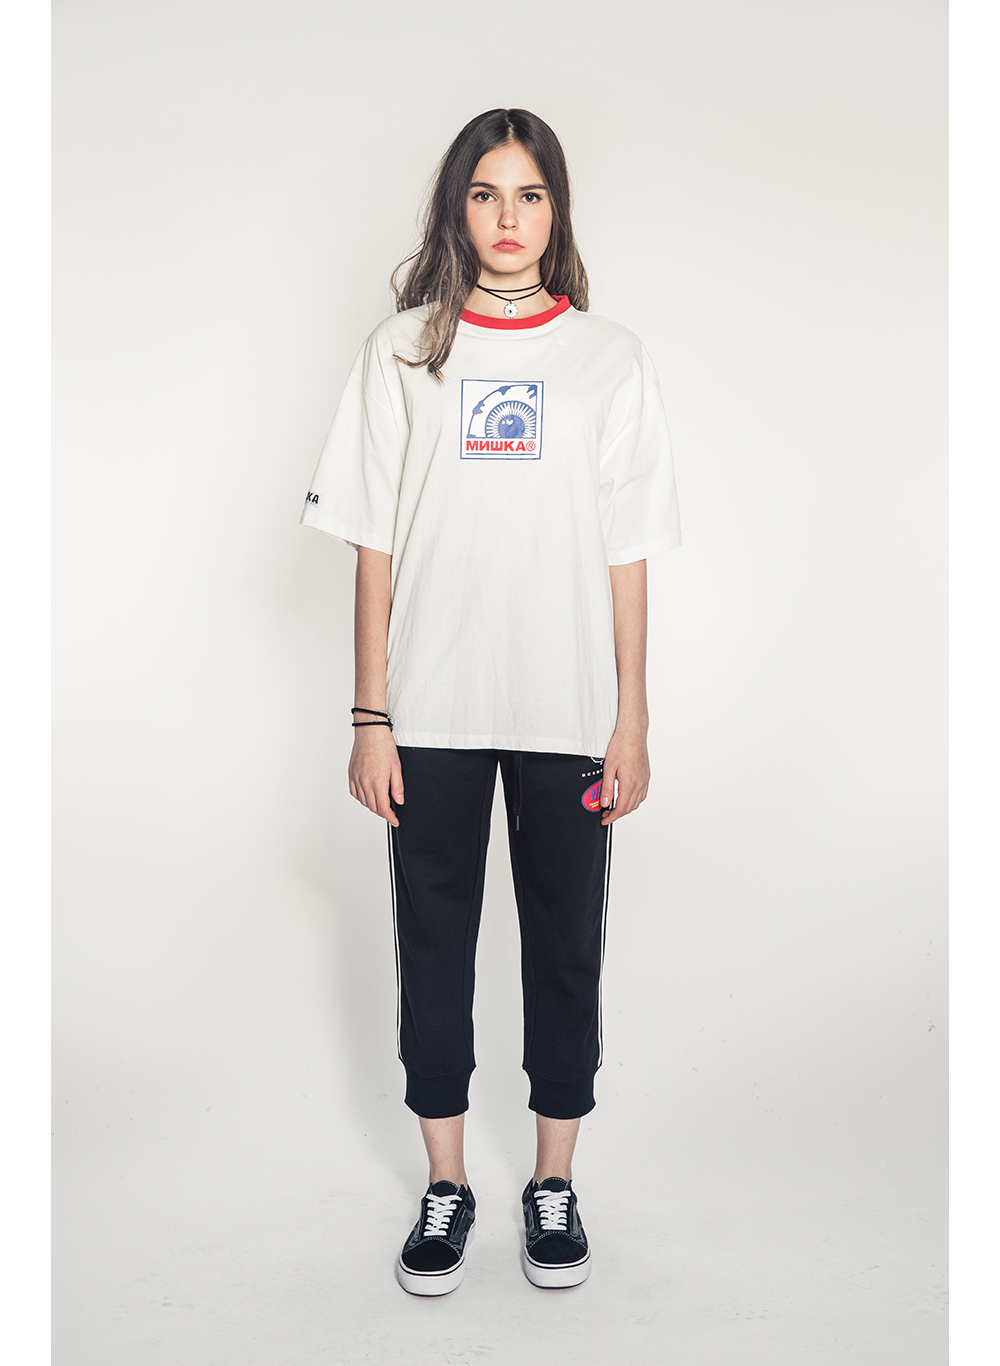 Keep Watch Worldwide Women's Tee